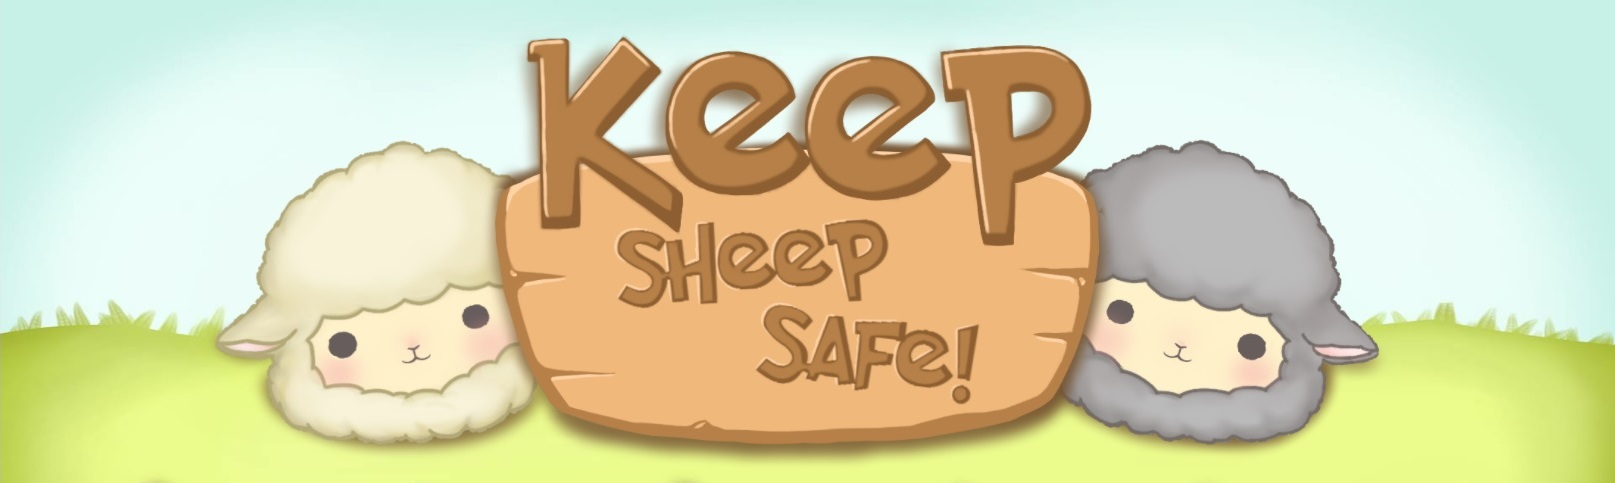 Keep Sheep Safe!